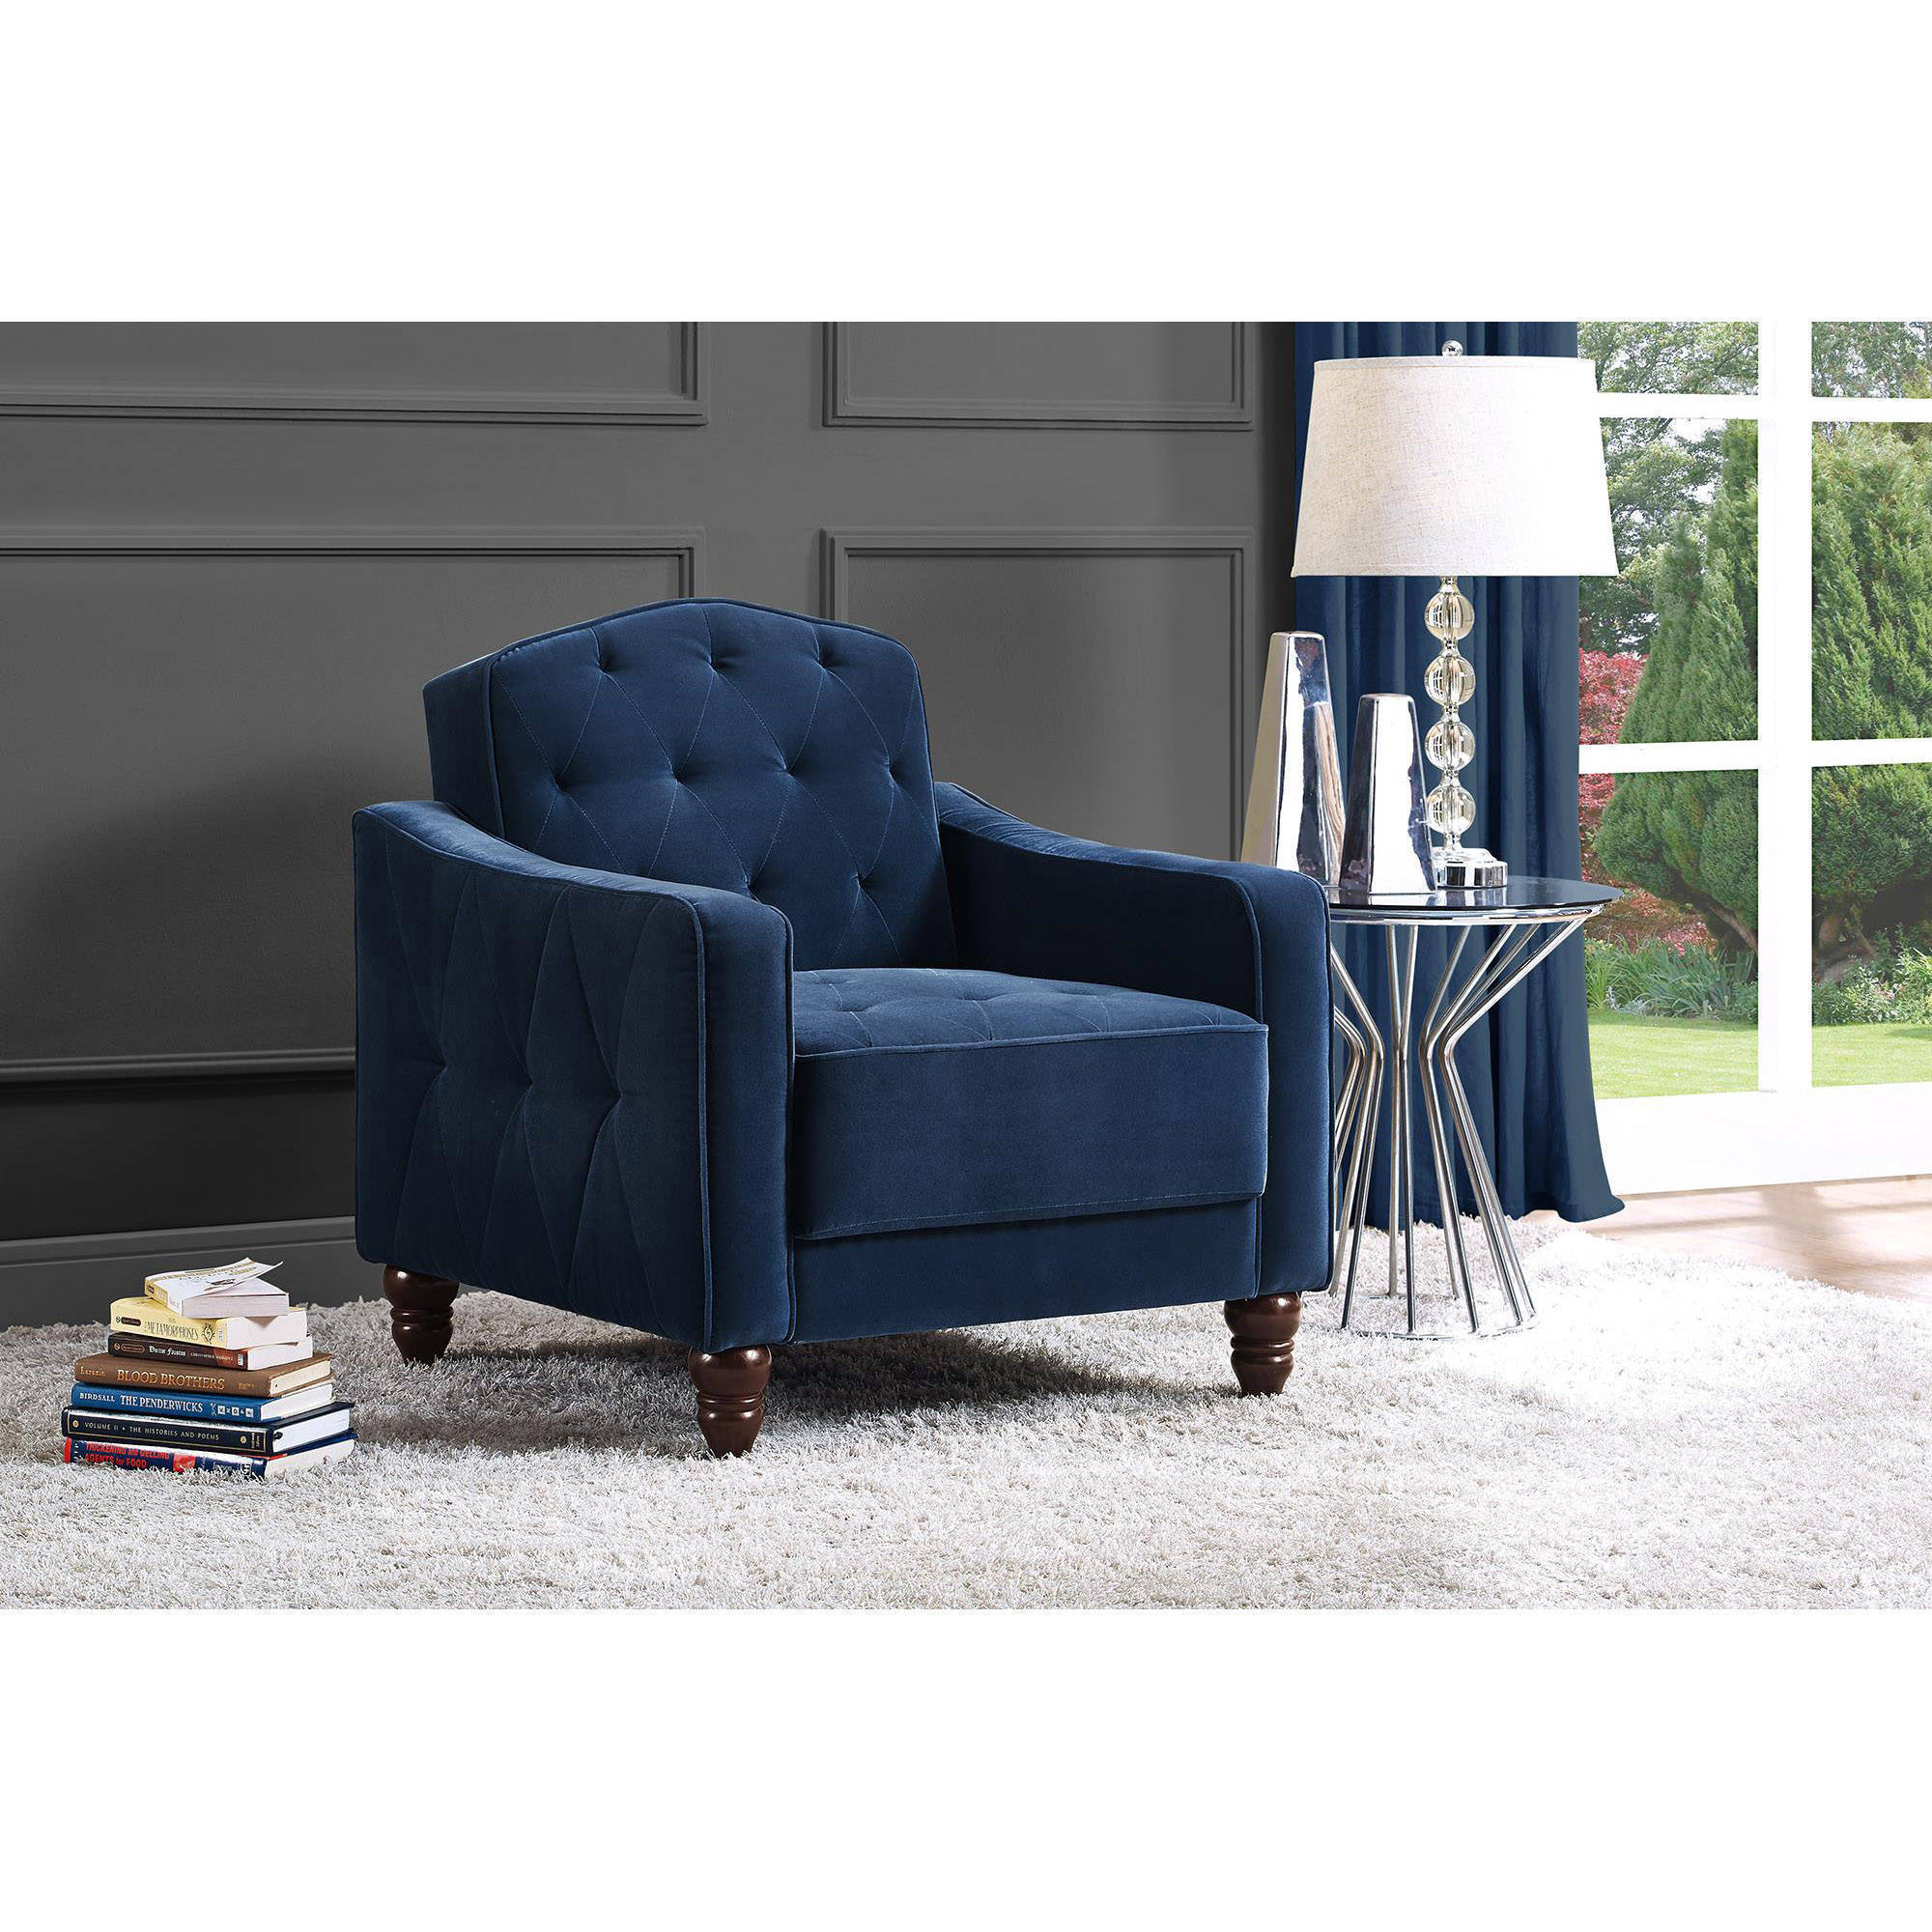 Novogratz Vintage Tufted Armchair, Multiple Colors Part 98